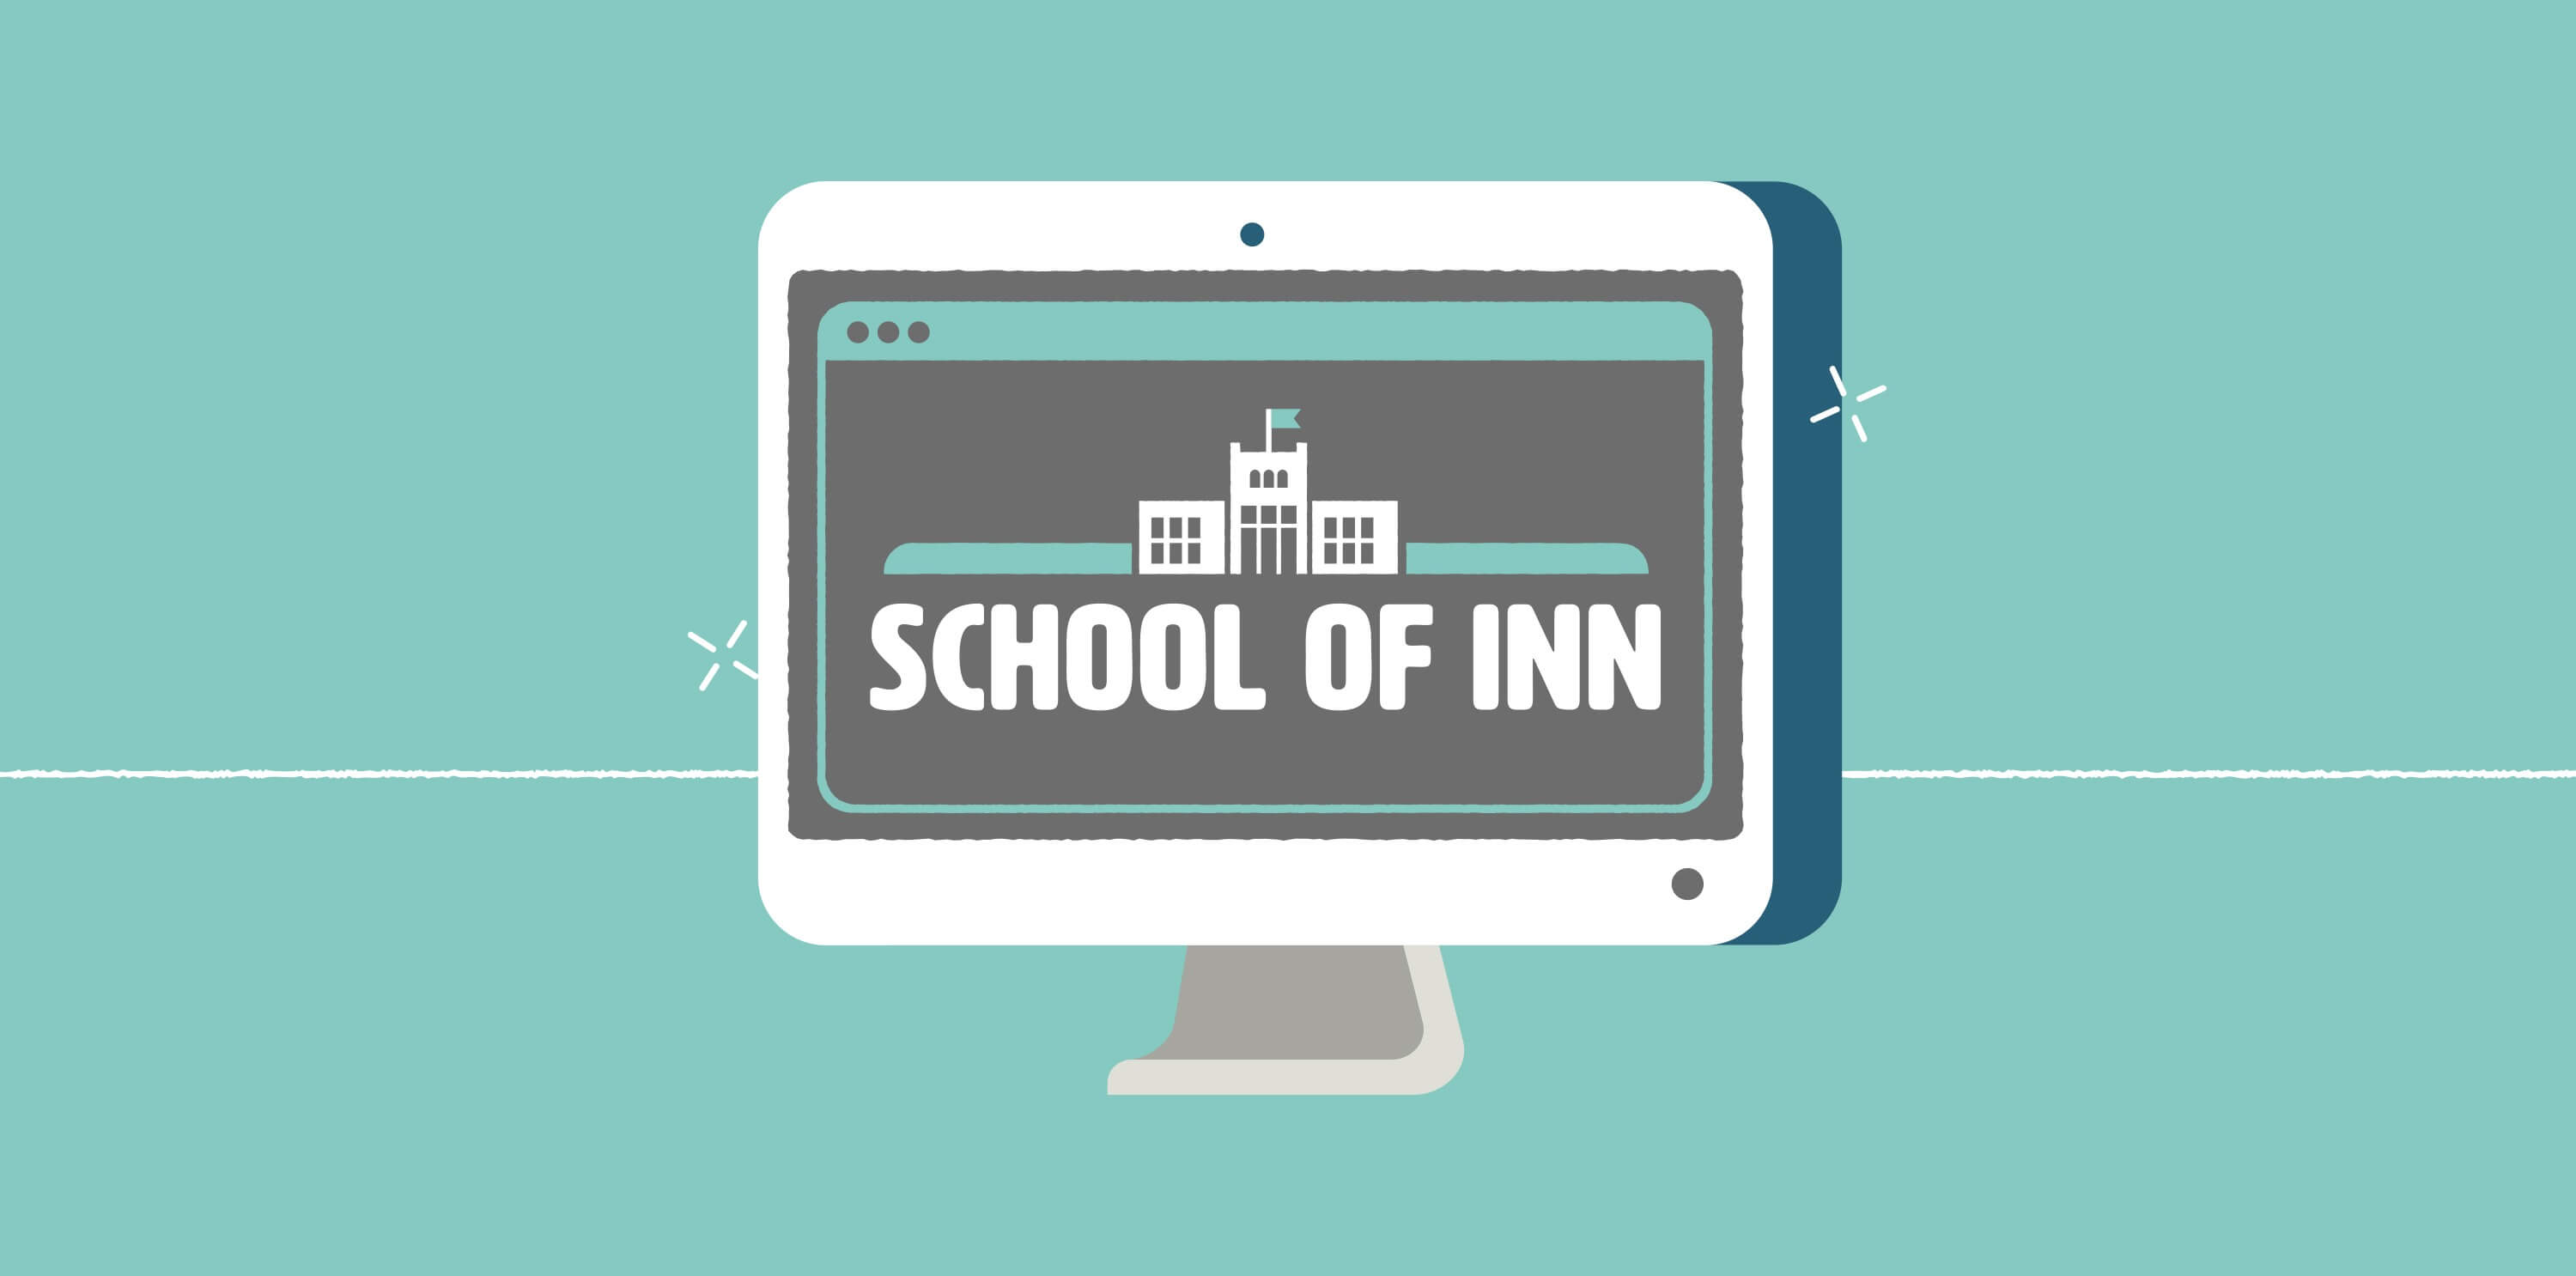 School of INN - World Health Organization